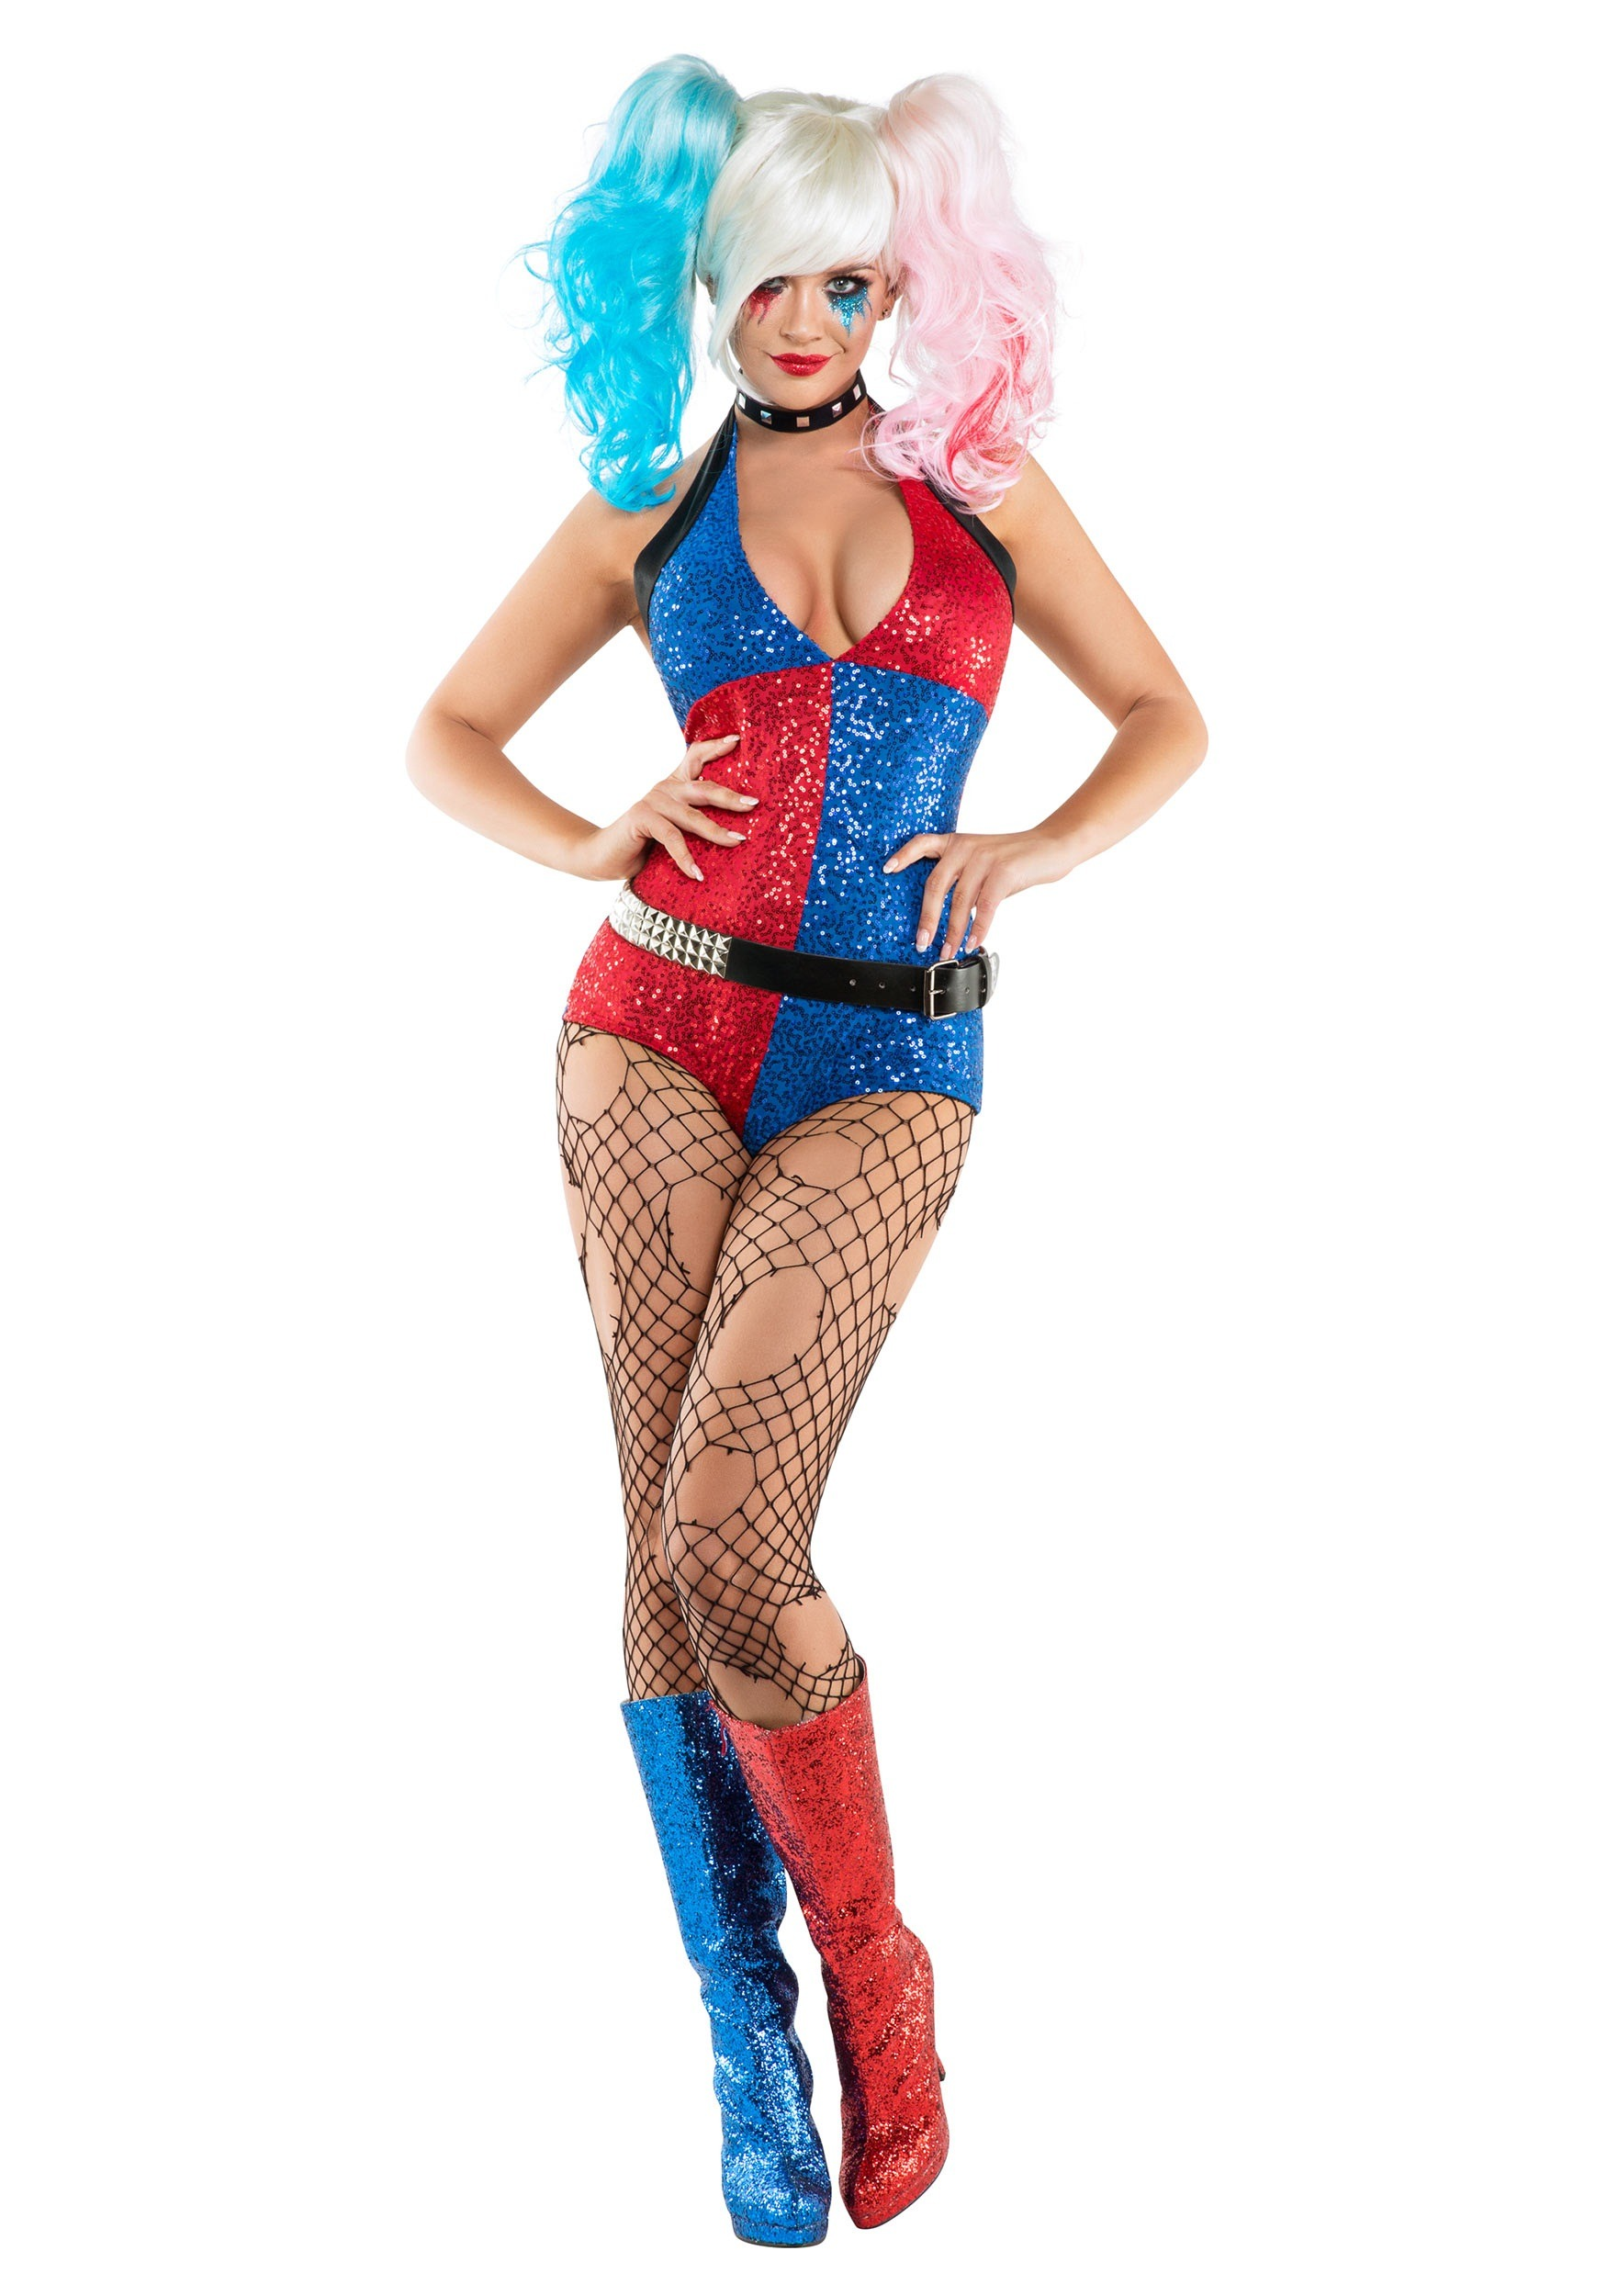 Daddyu0027s Little Monster Costume  sc 1 st  Halloween Costumes & Clown Costumes - Adult Kids Clown Costume for Halloween